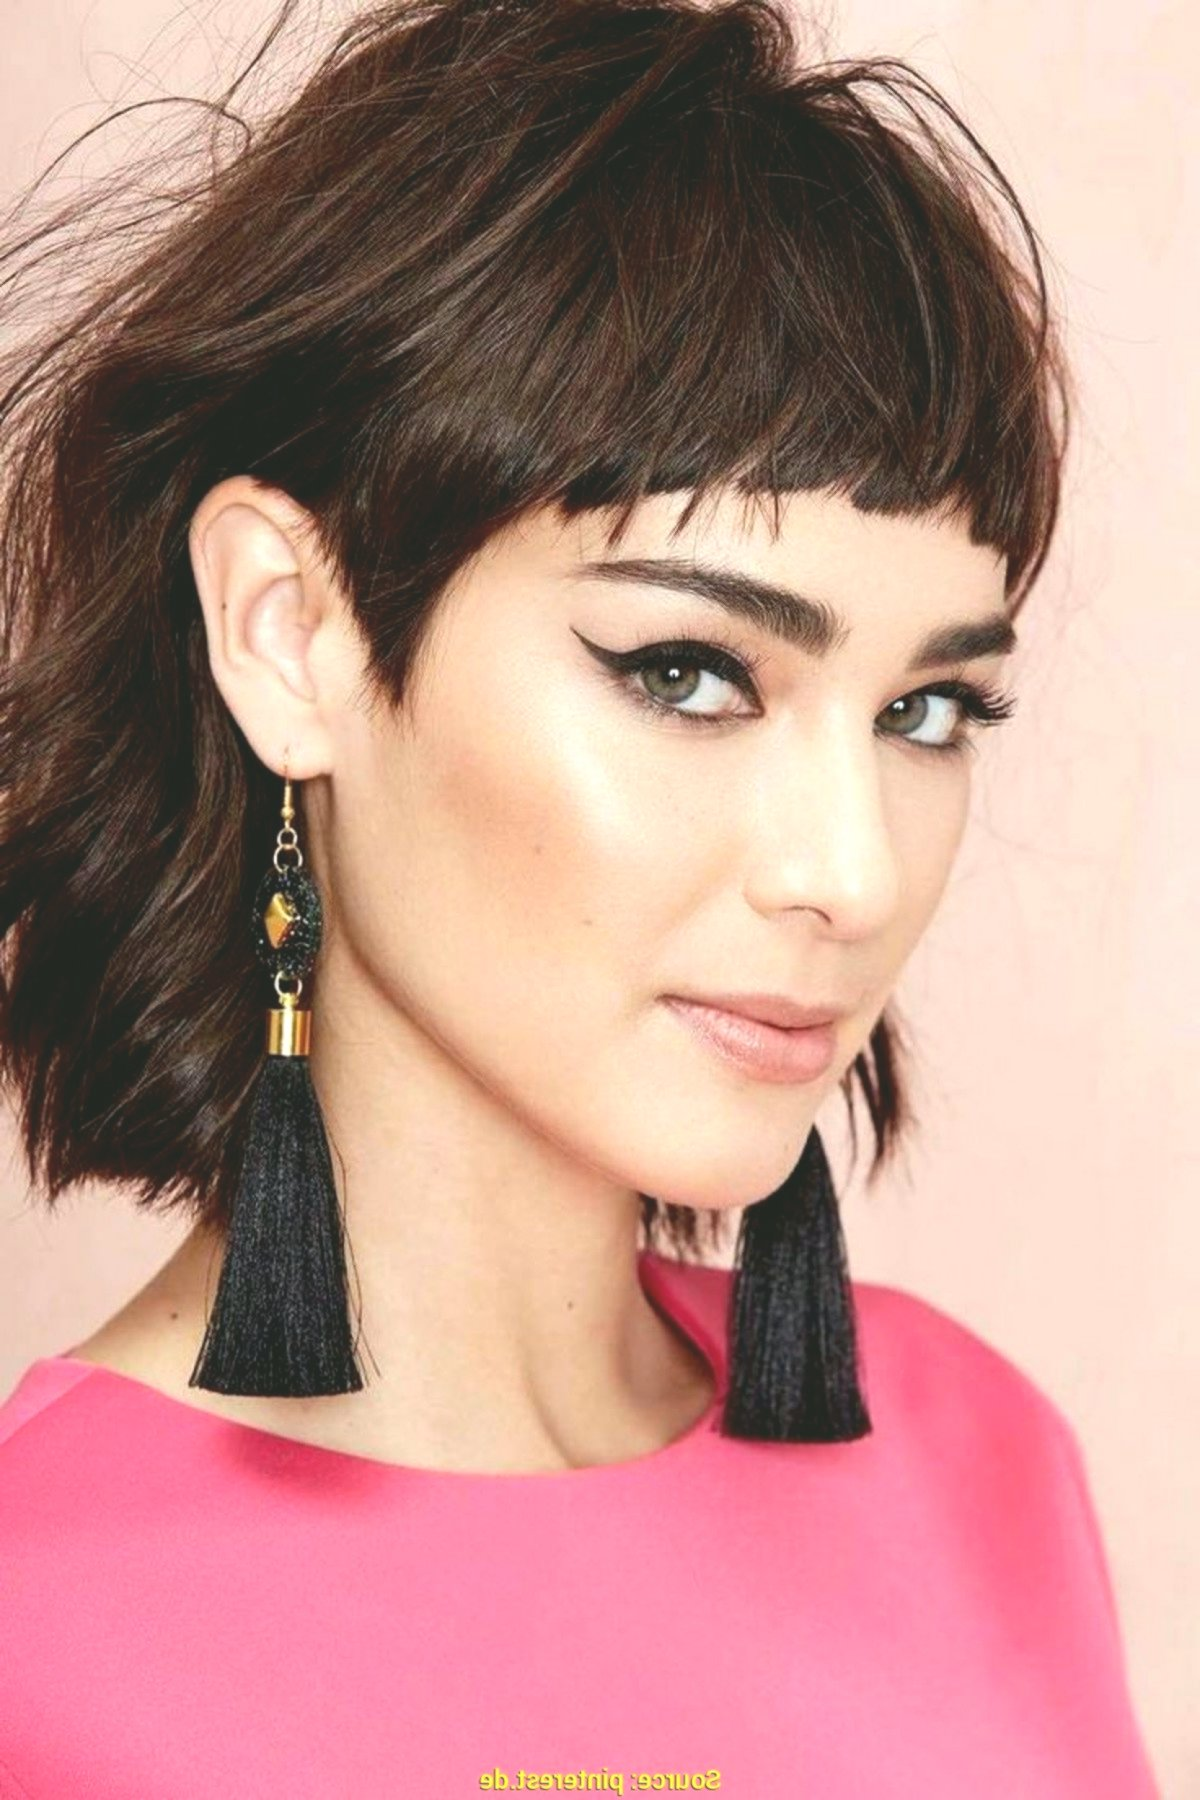 Excellent hairstyles for slender faces Design Wonderful Hairstyles For Narrow Faces Decoration